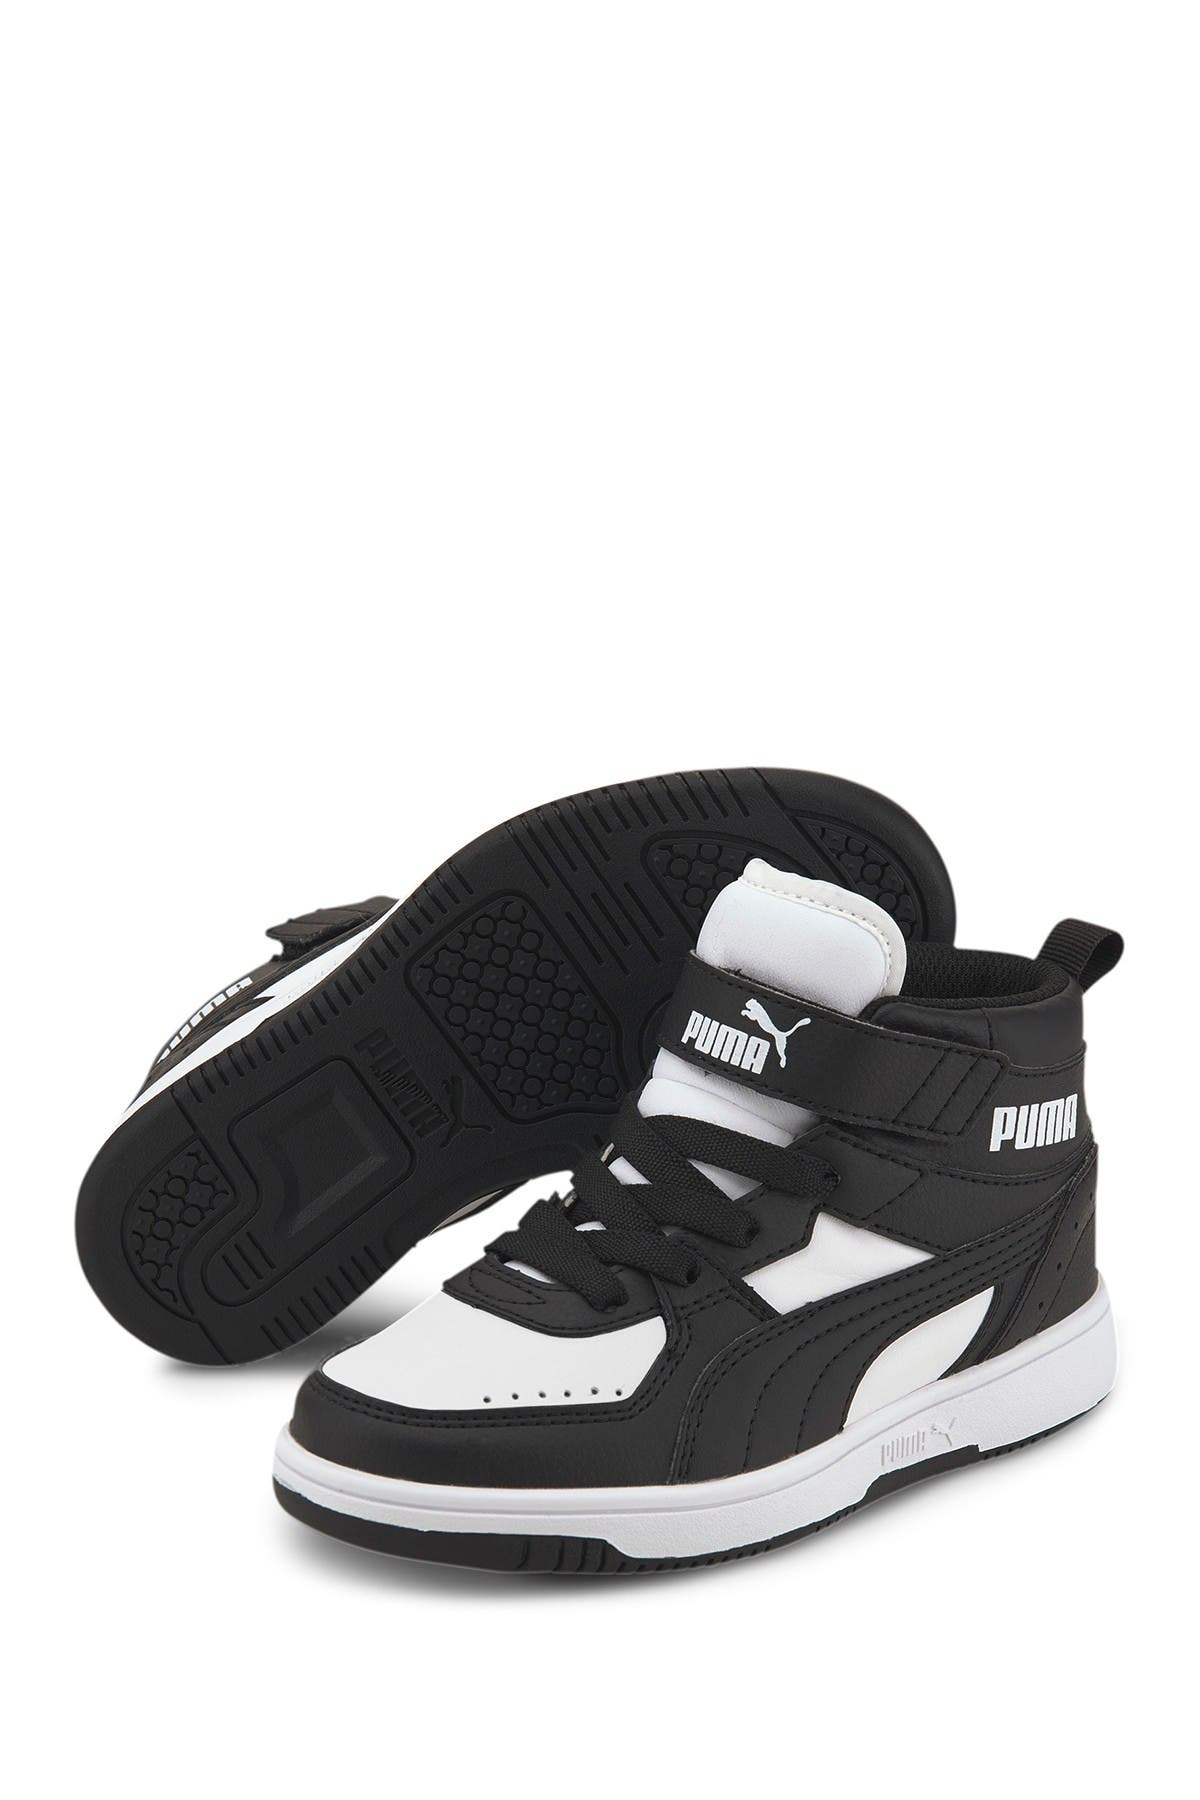 Image of PUMA Rebound Joy Sneaker